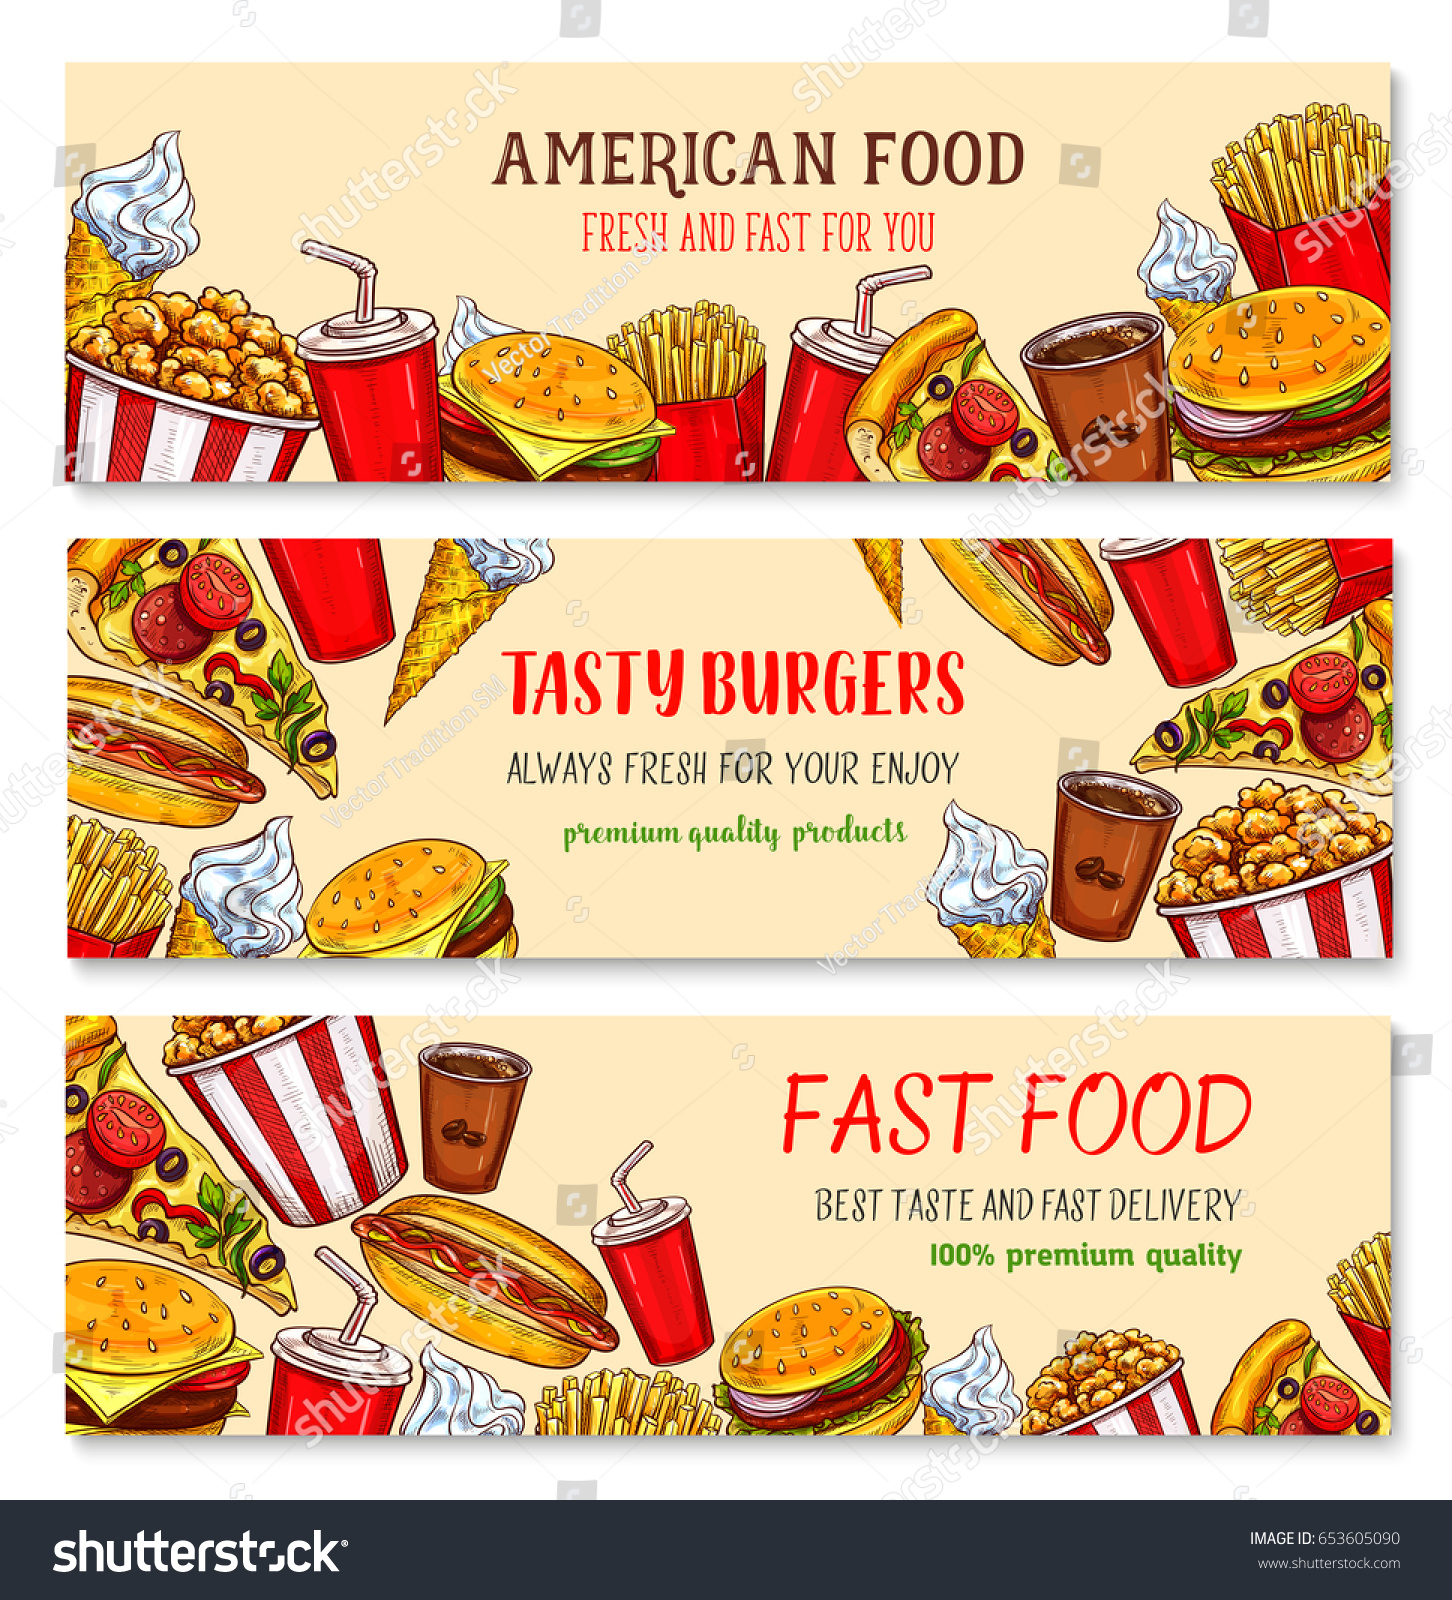 Fast food restaurant and pizzeria poster template Fastfood